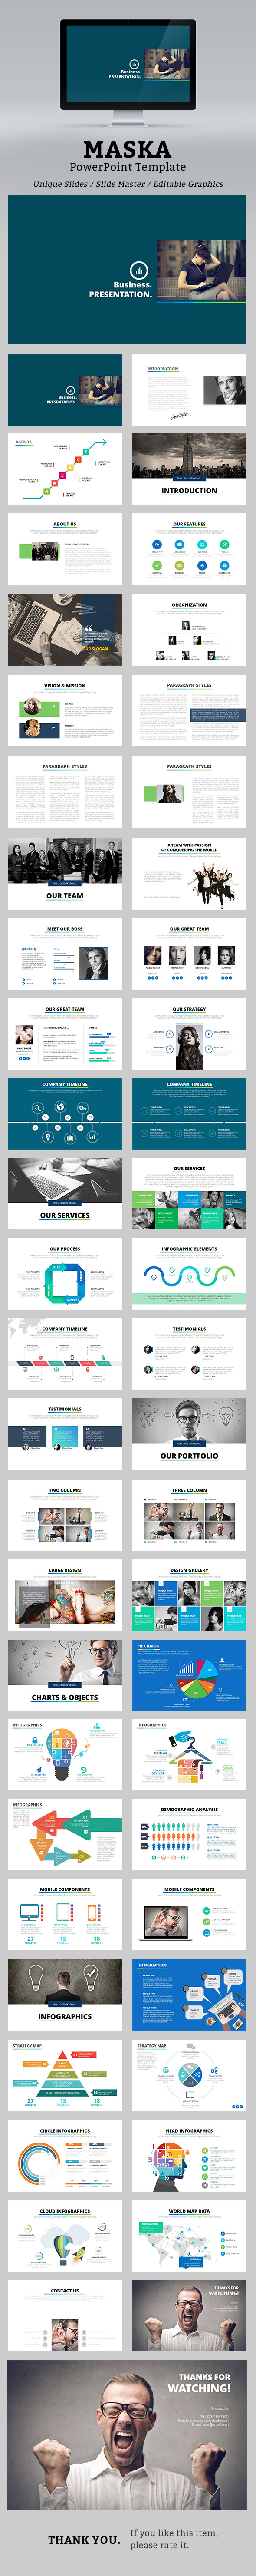 Maska PowerPoint Template - Business PowerPoint Templates